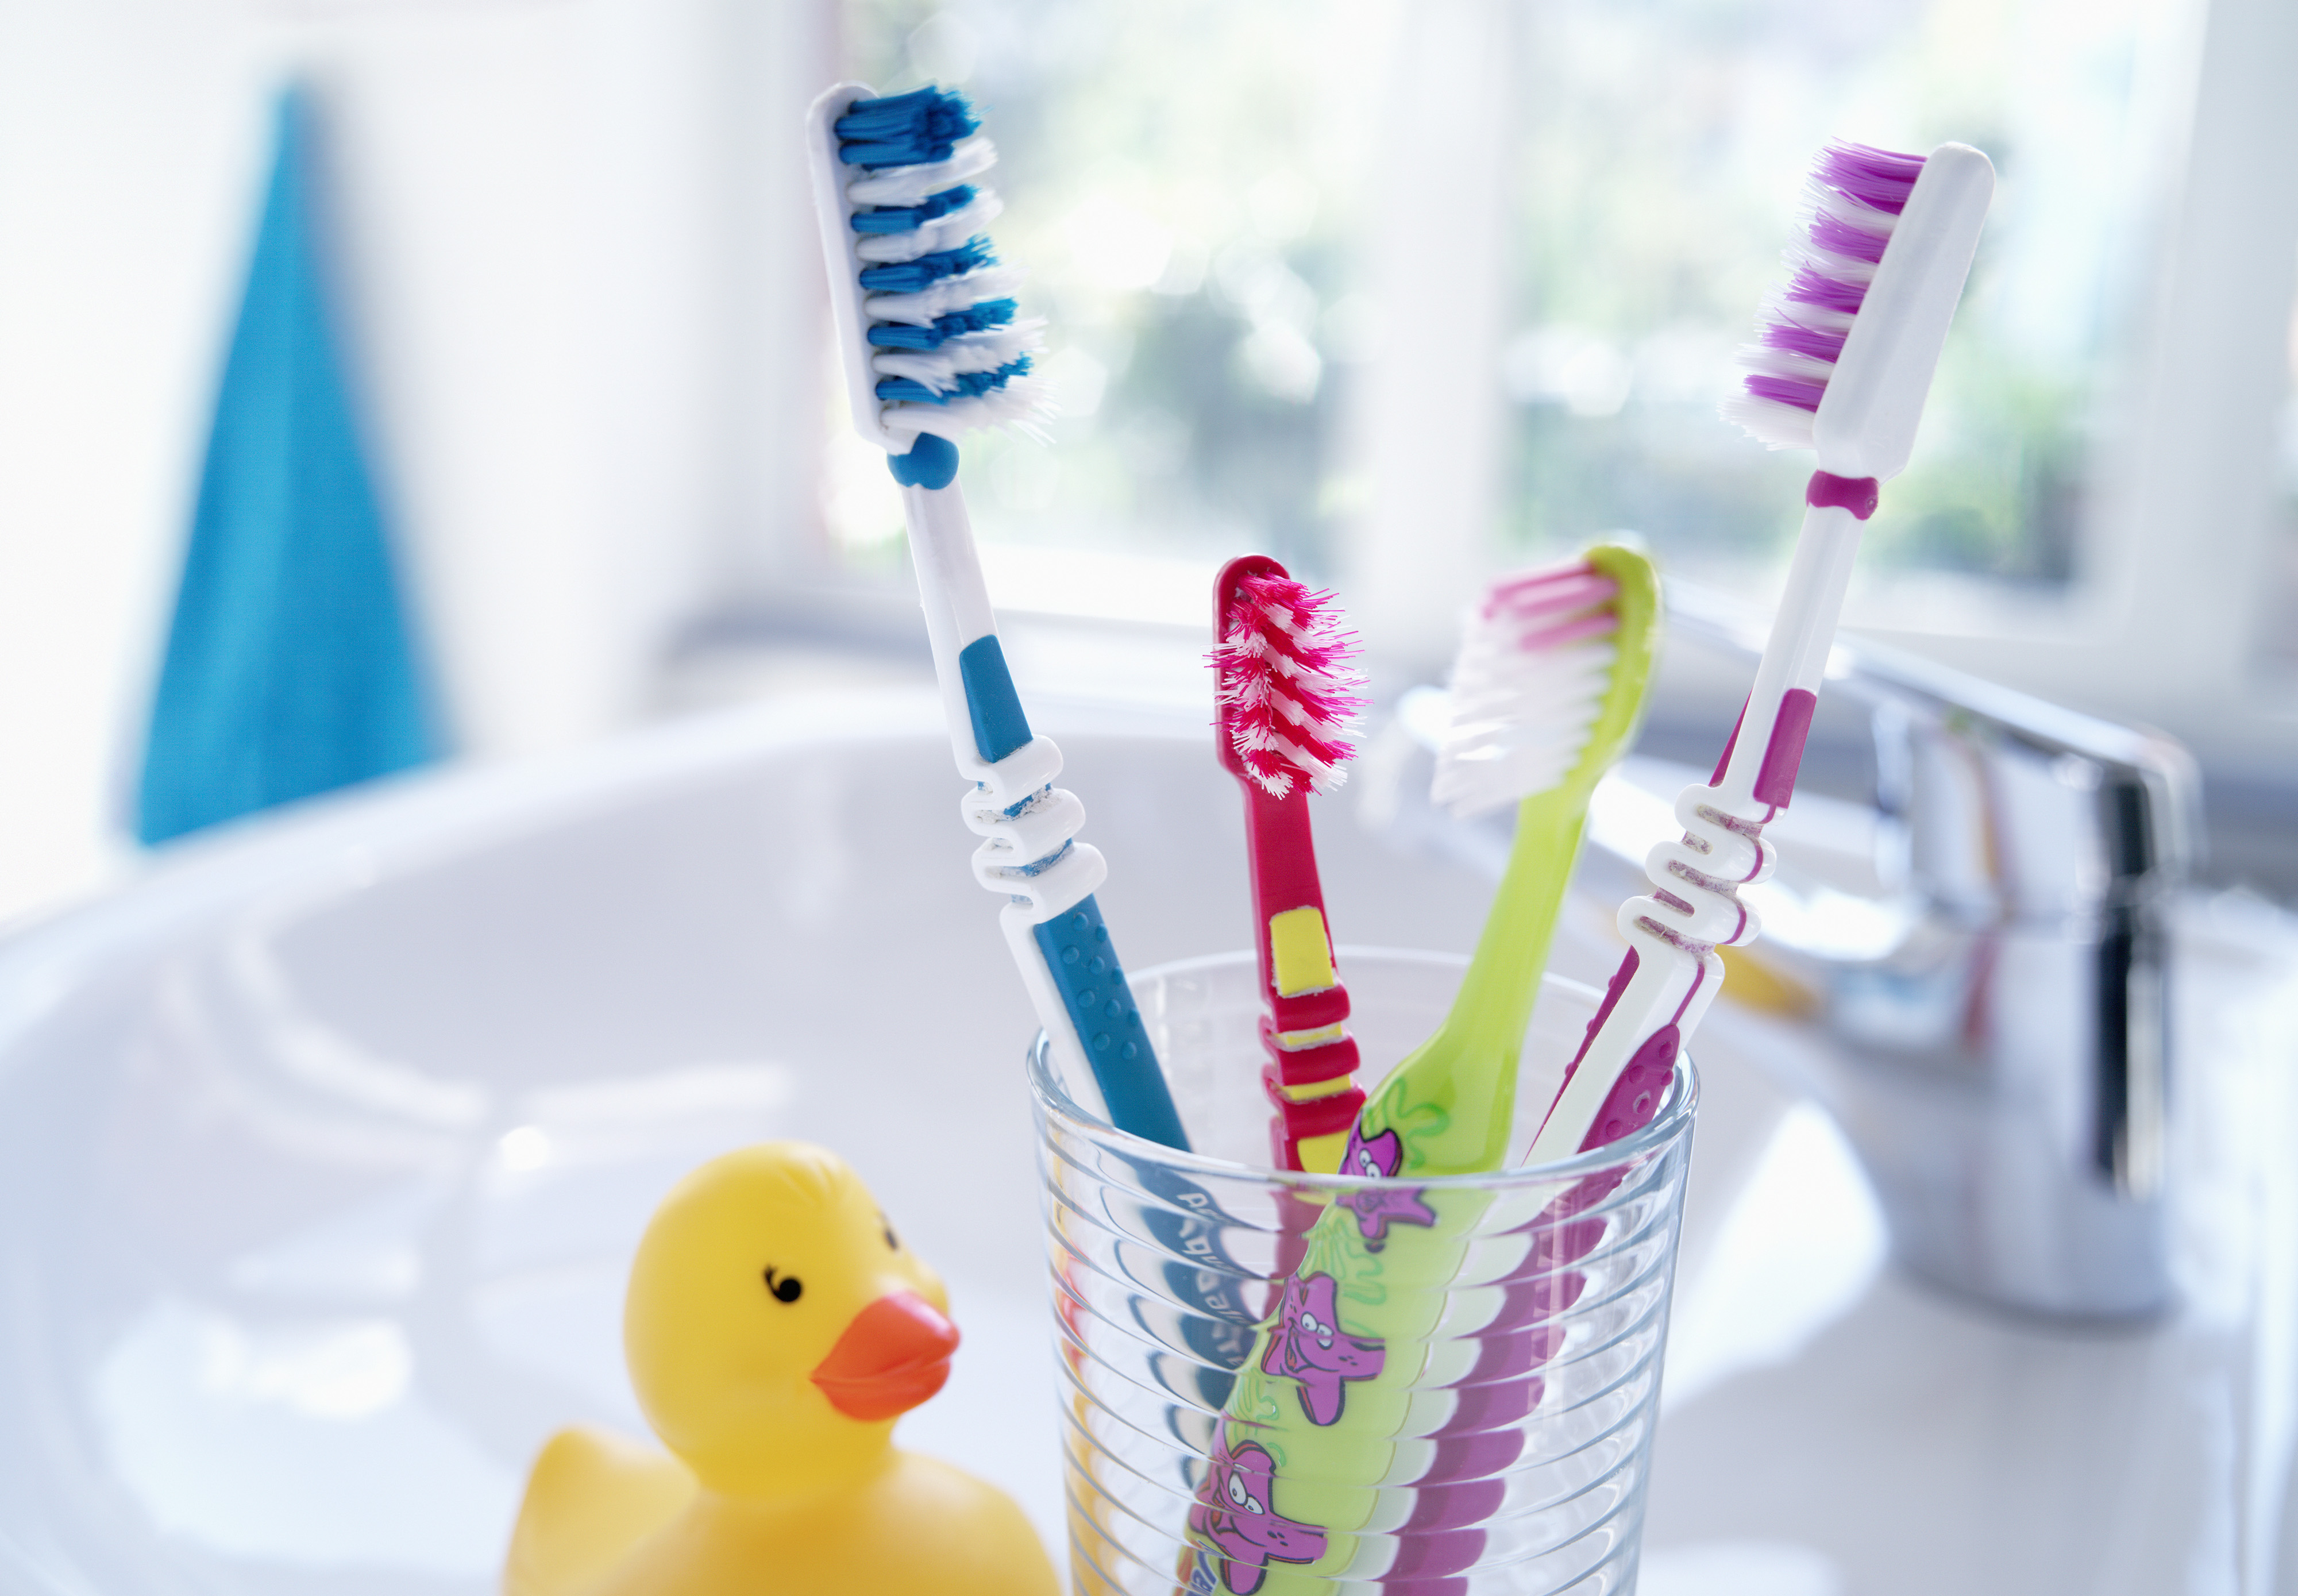 Toothbrushes in Cup on Countertop